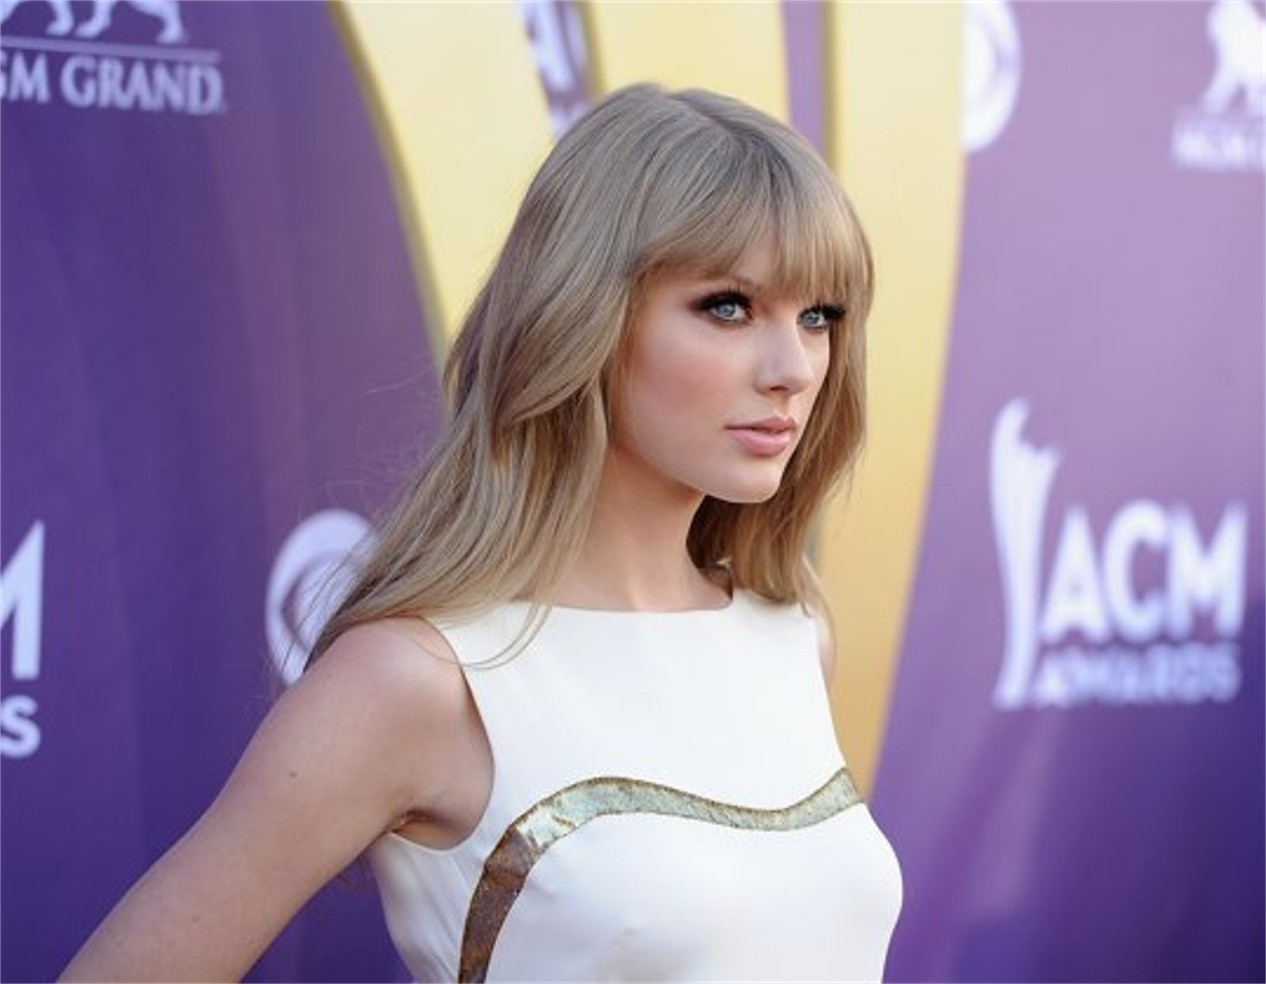 http://4.bp.blogspot.com/-NhnJSuKltbA/T8wmPW_S21I/AAAAAAAABR8/a9_lyx0tO5U/s1600/Taylor+Swift_ACM+Awards.jpg